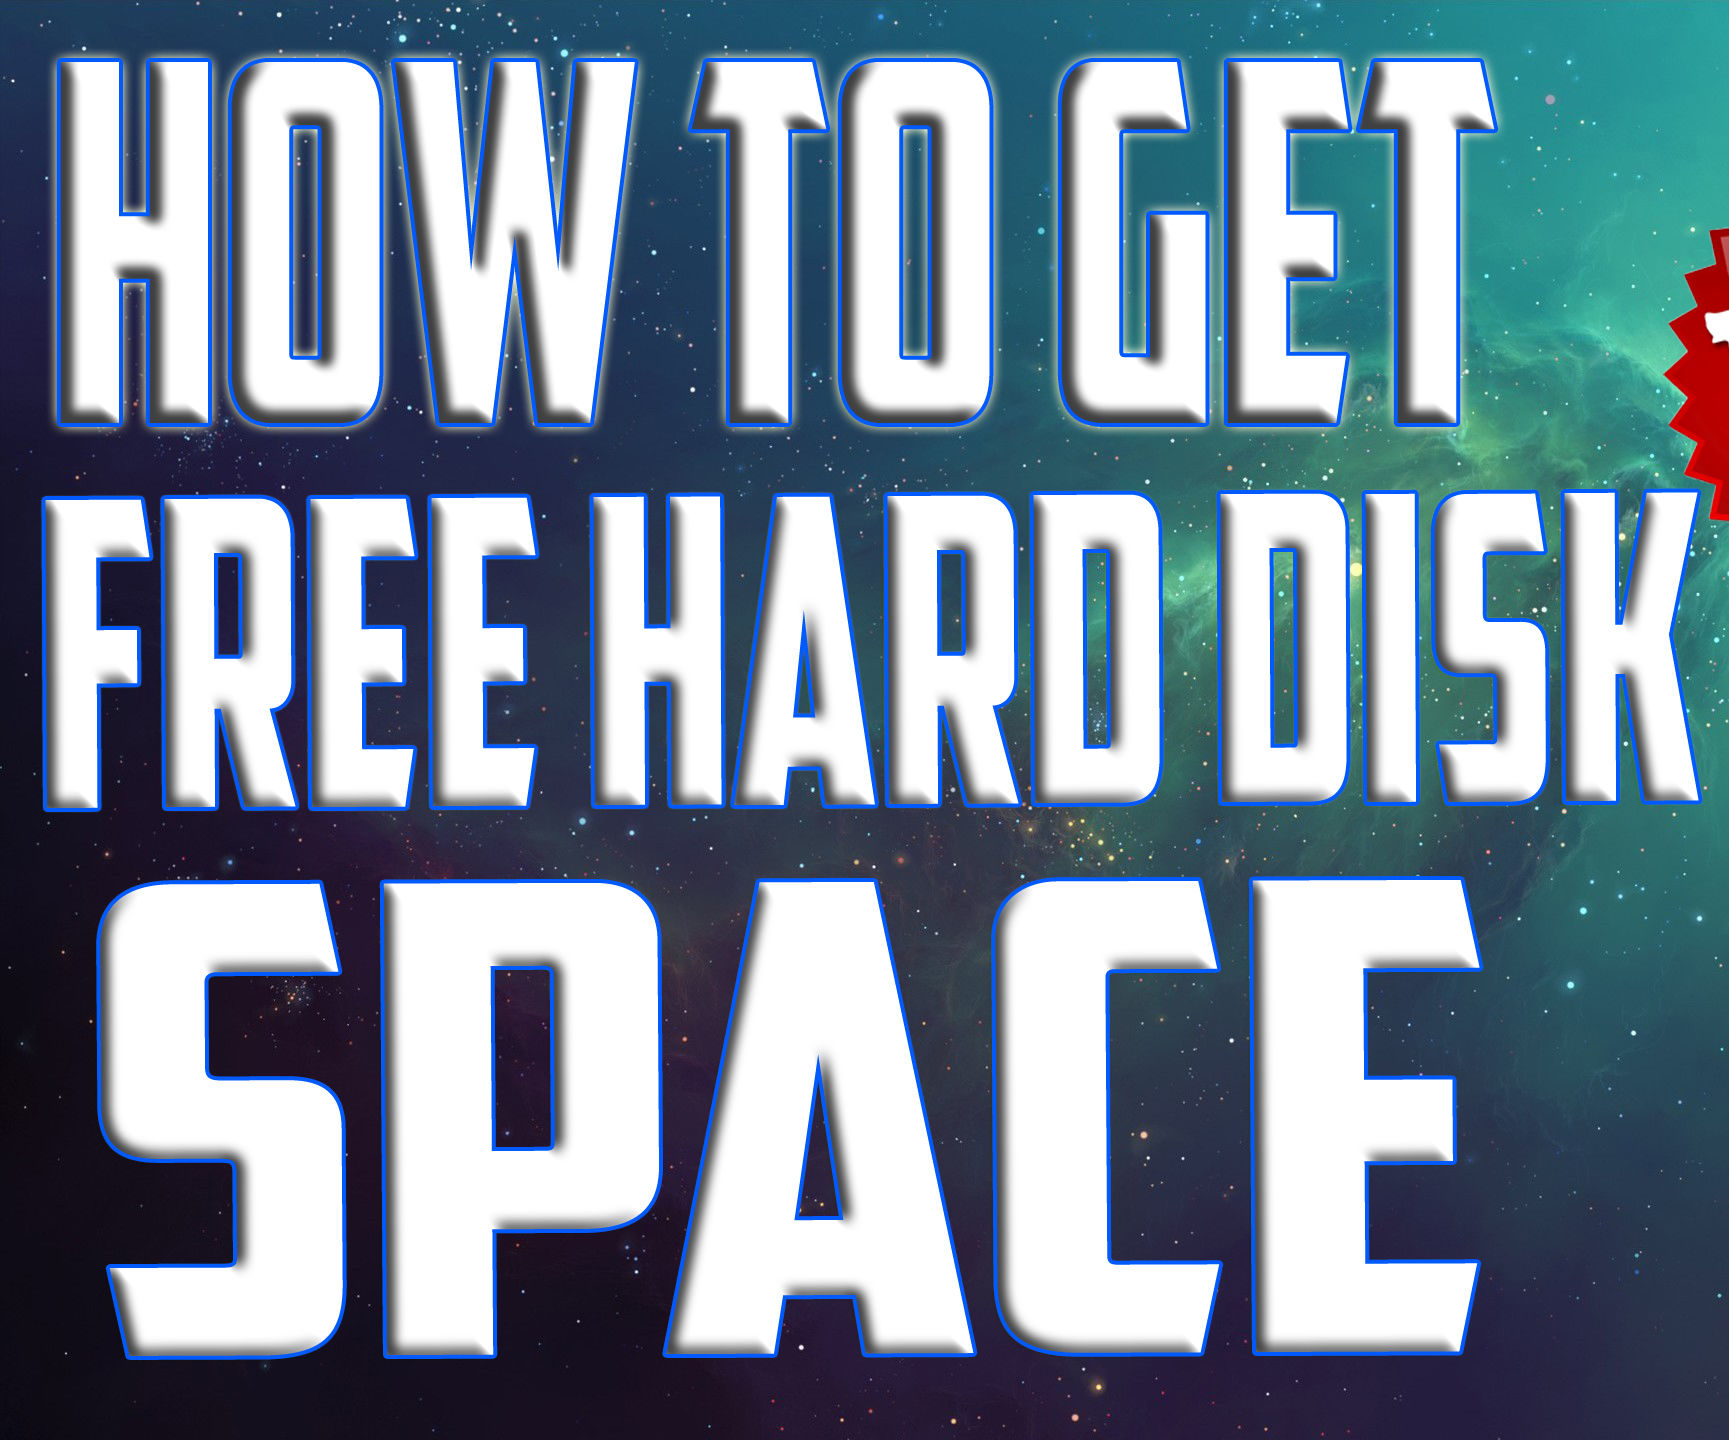 How to get Free Hard Disk space